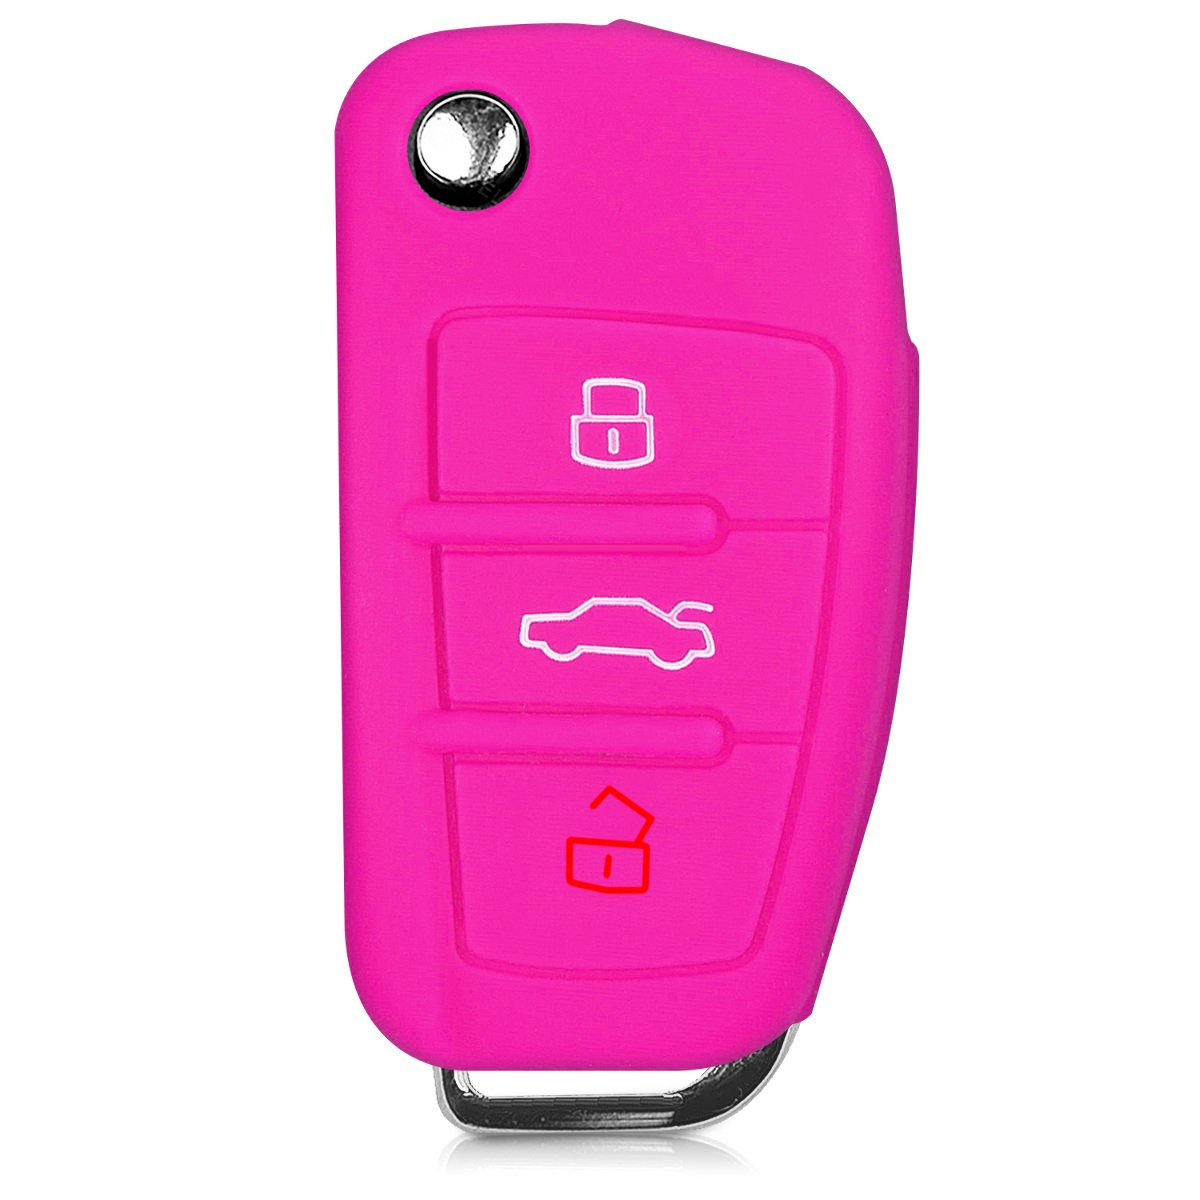 Black kwmobile Car Key Cover for Audi Silicone Protective Key Fob Cover for Audi 3 Button Flip Key